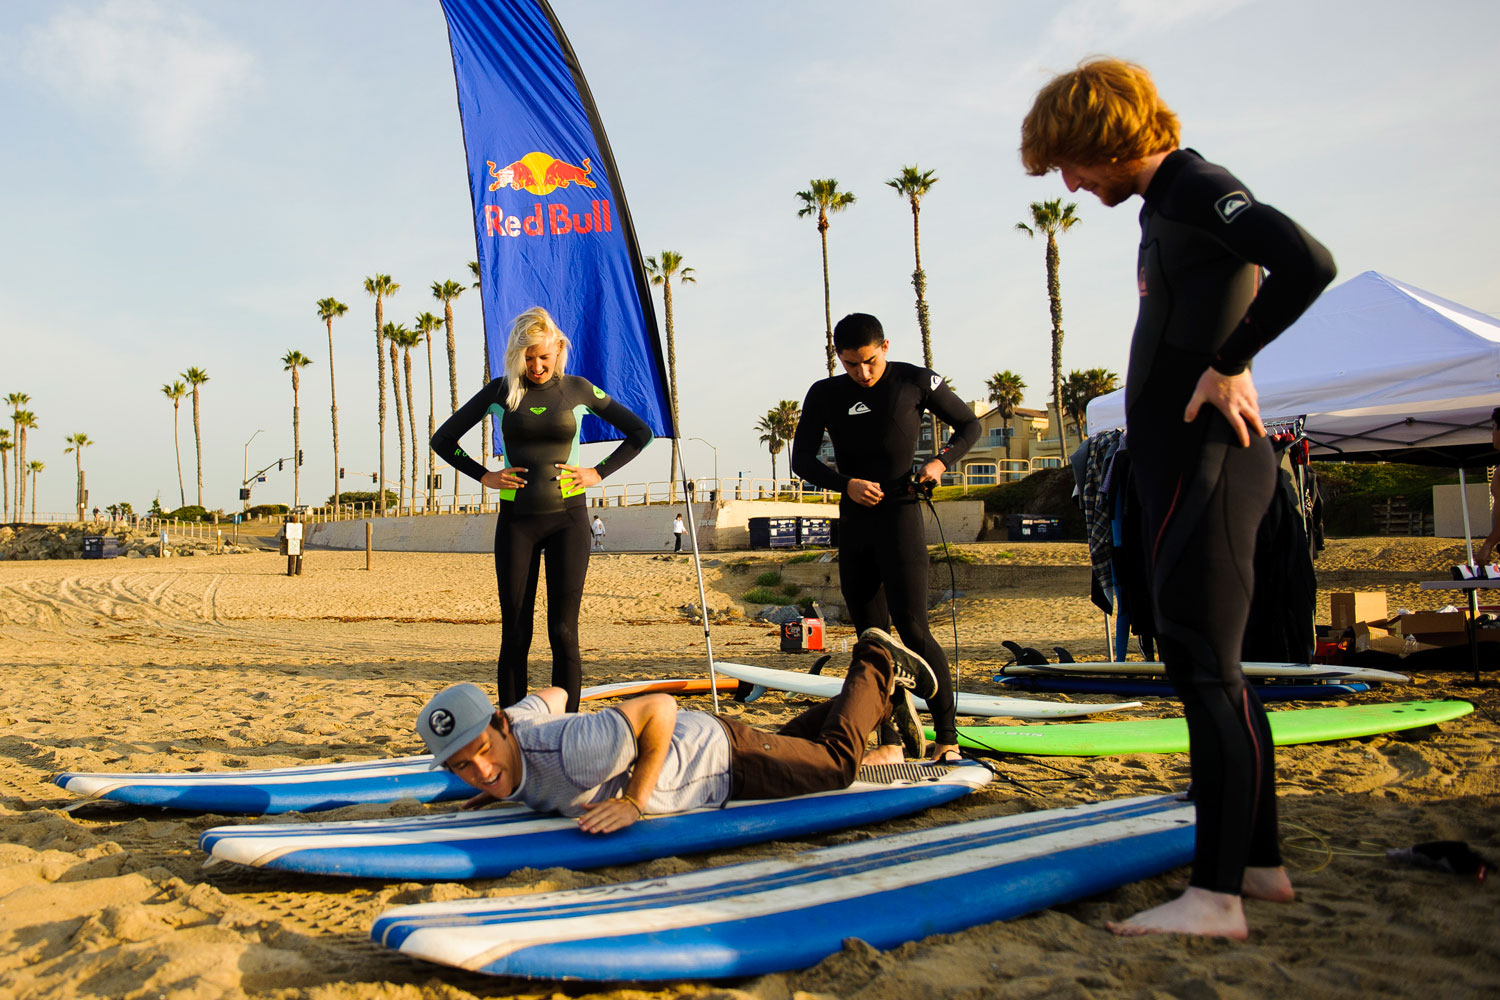 Amateur surfers learn how to paddle out in the water before they enter the waves at Huntington Beach.